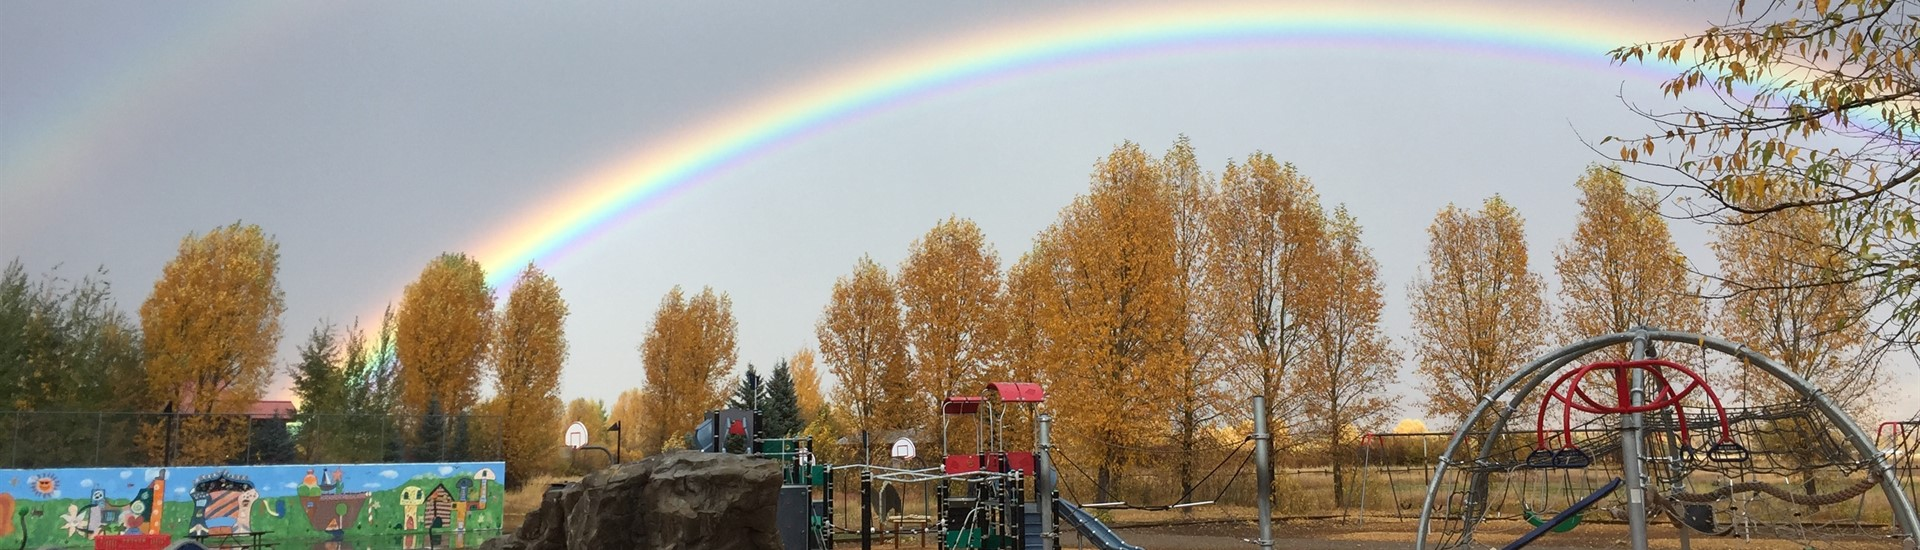 Rainbow over the Wilson Elementary School playground